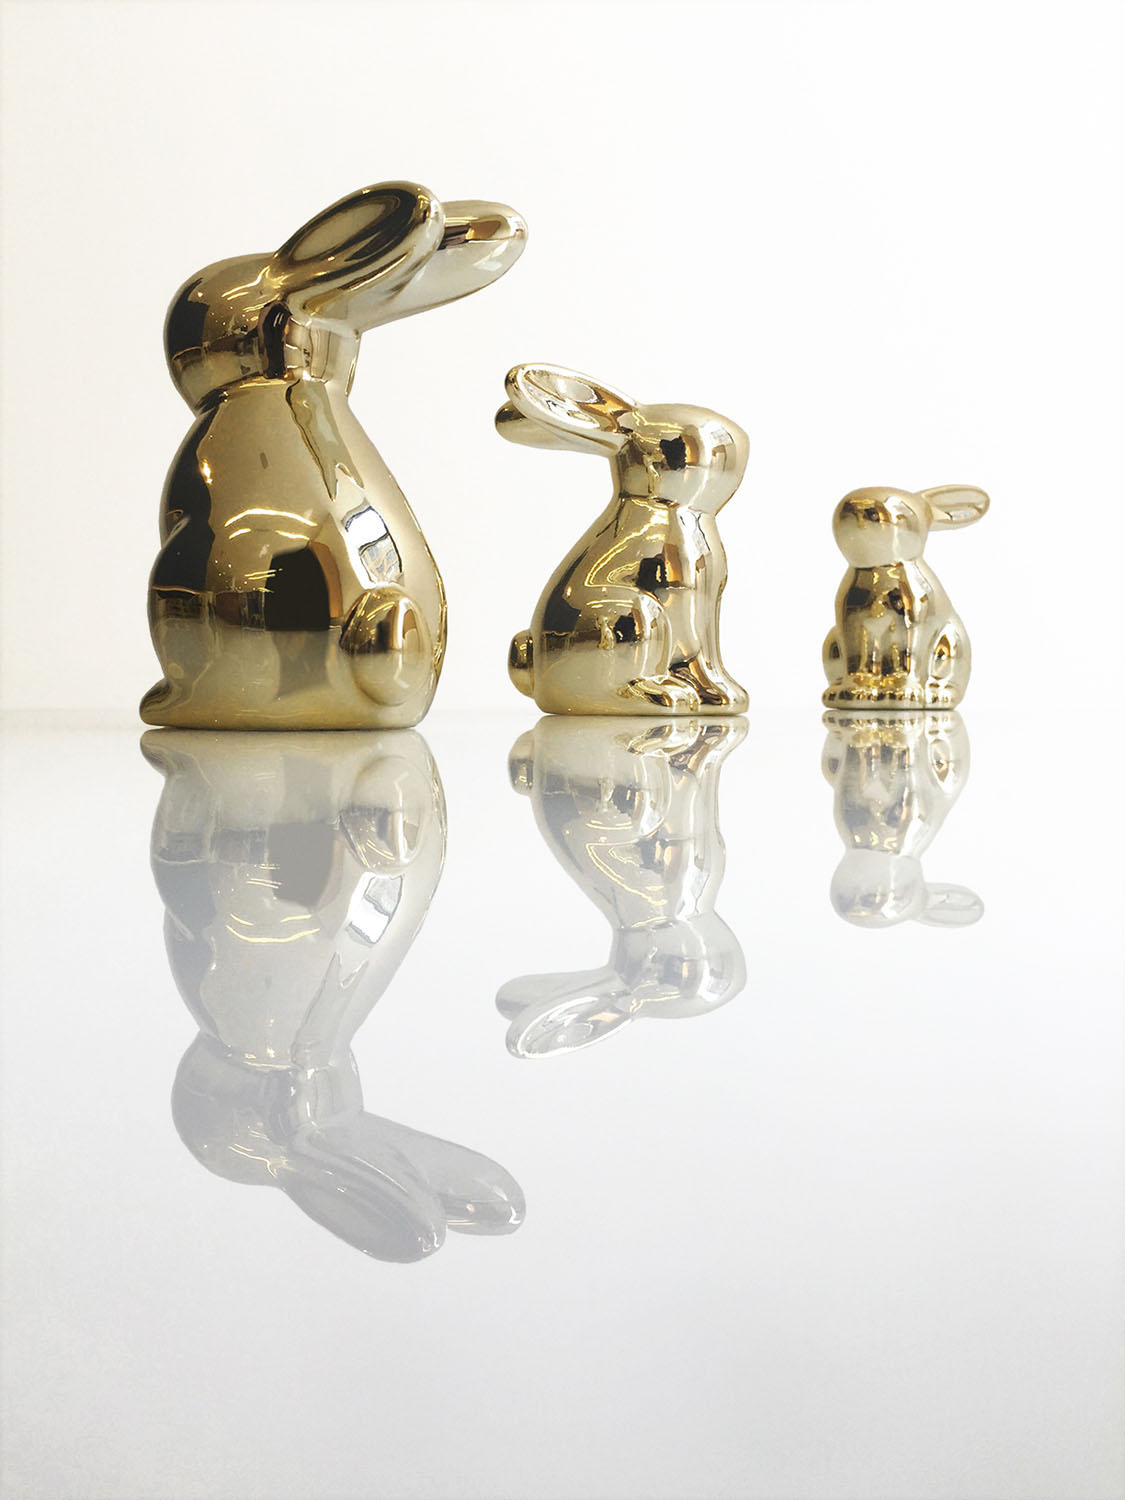 Gold Rabbits 1.jpg